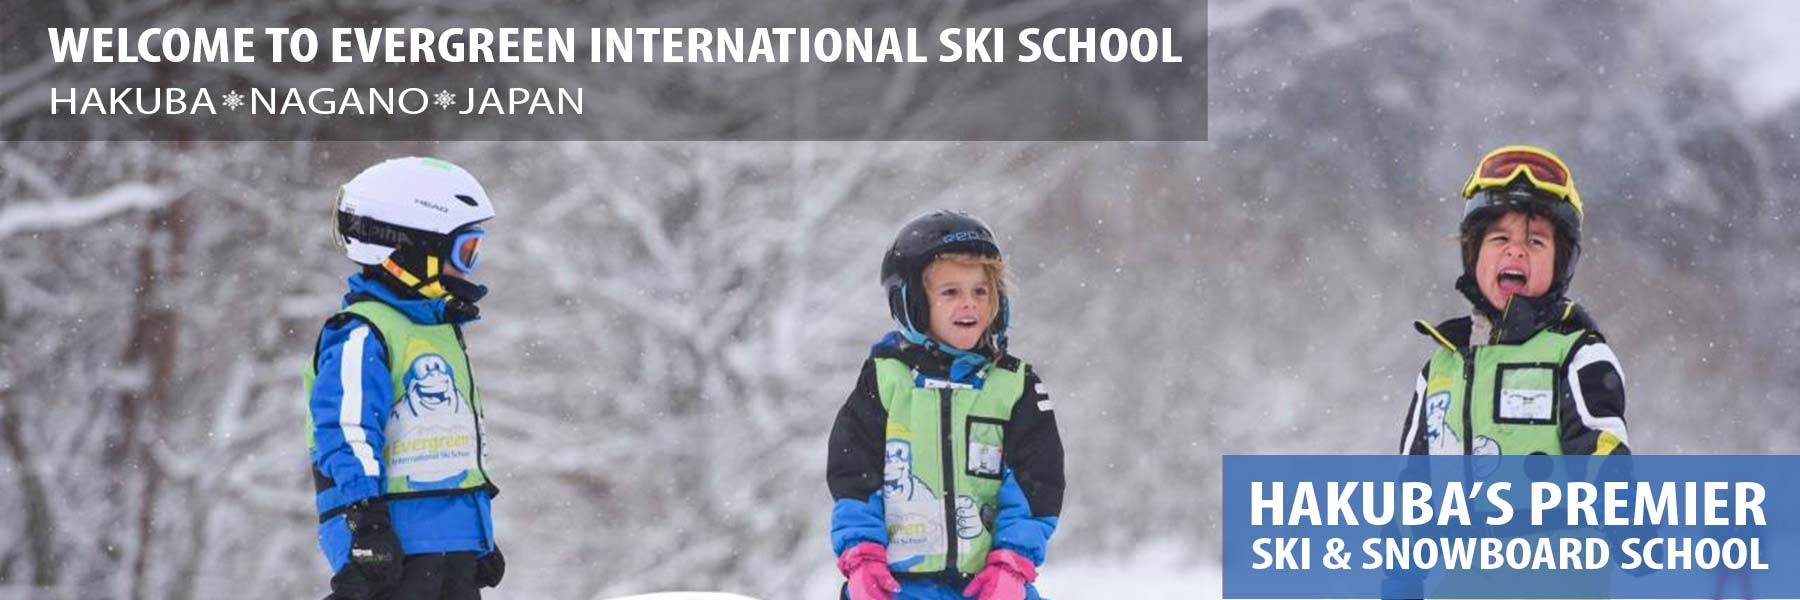 hakuba ski school header - kids lessons